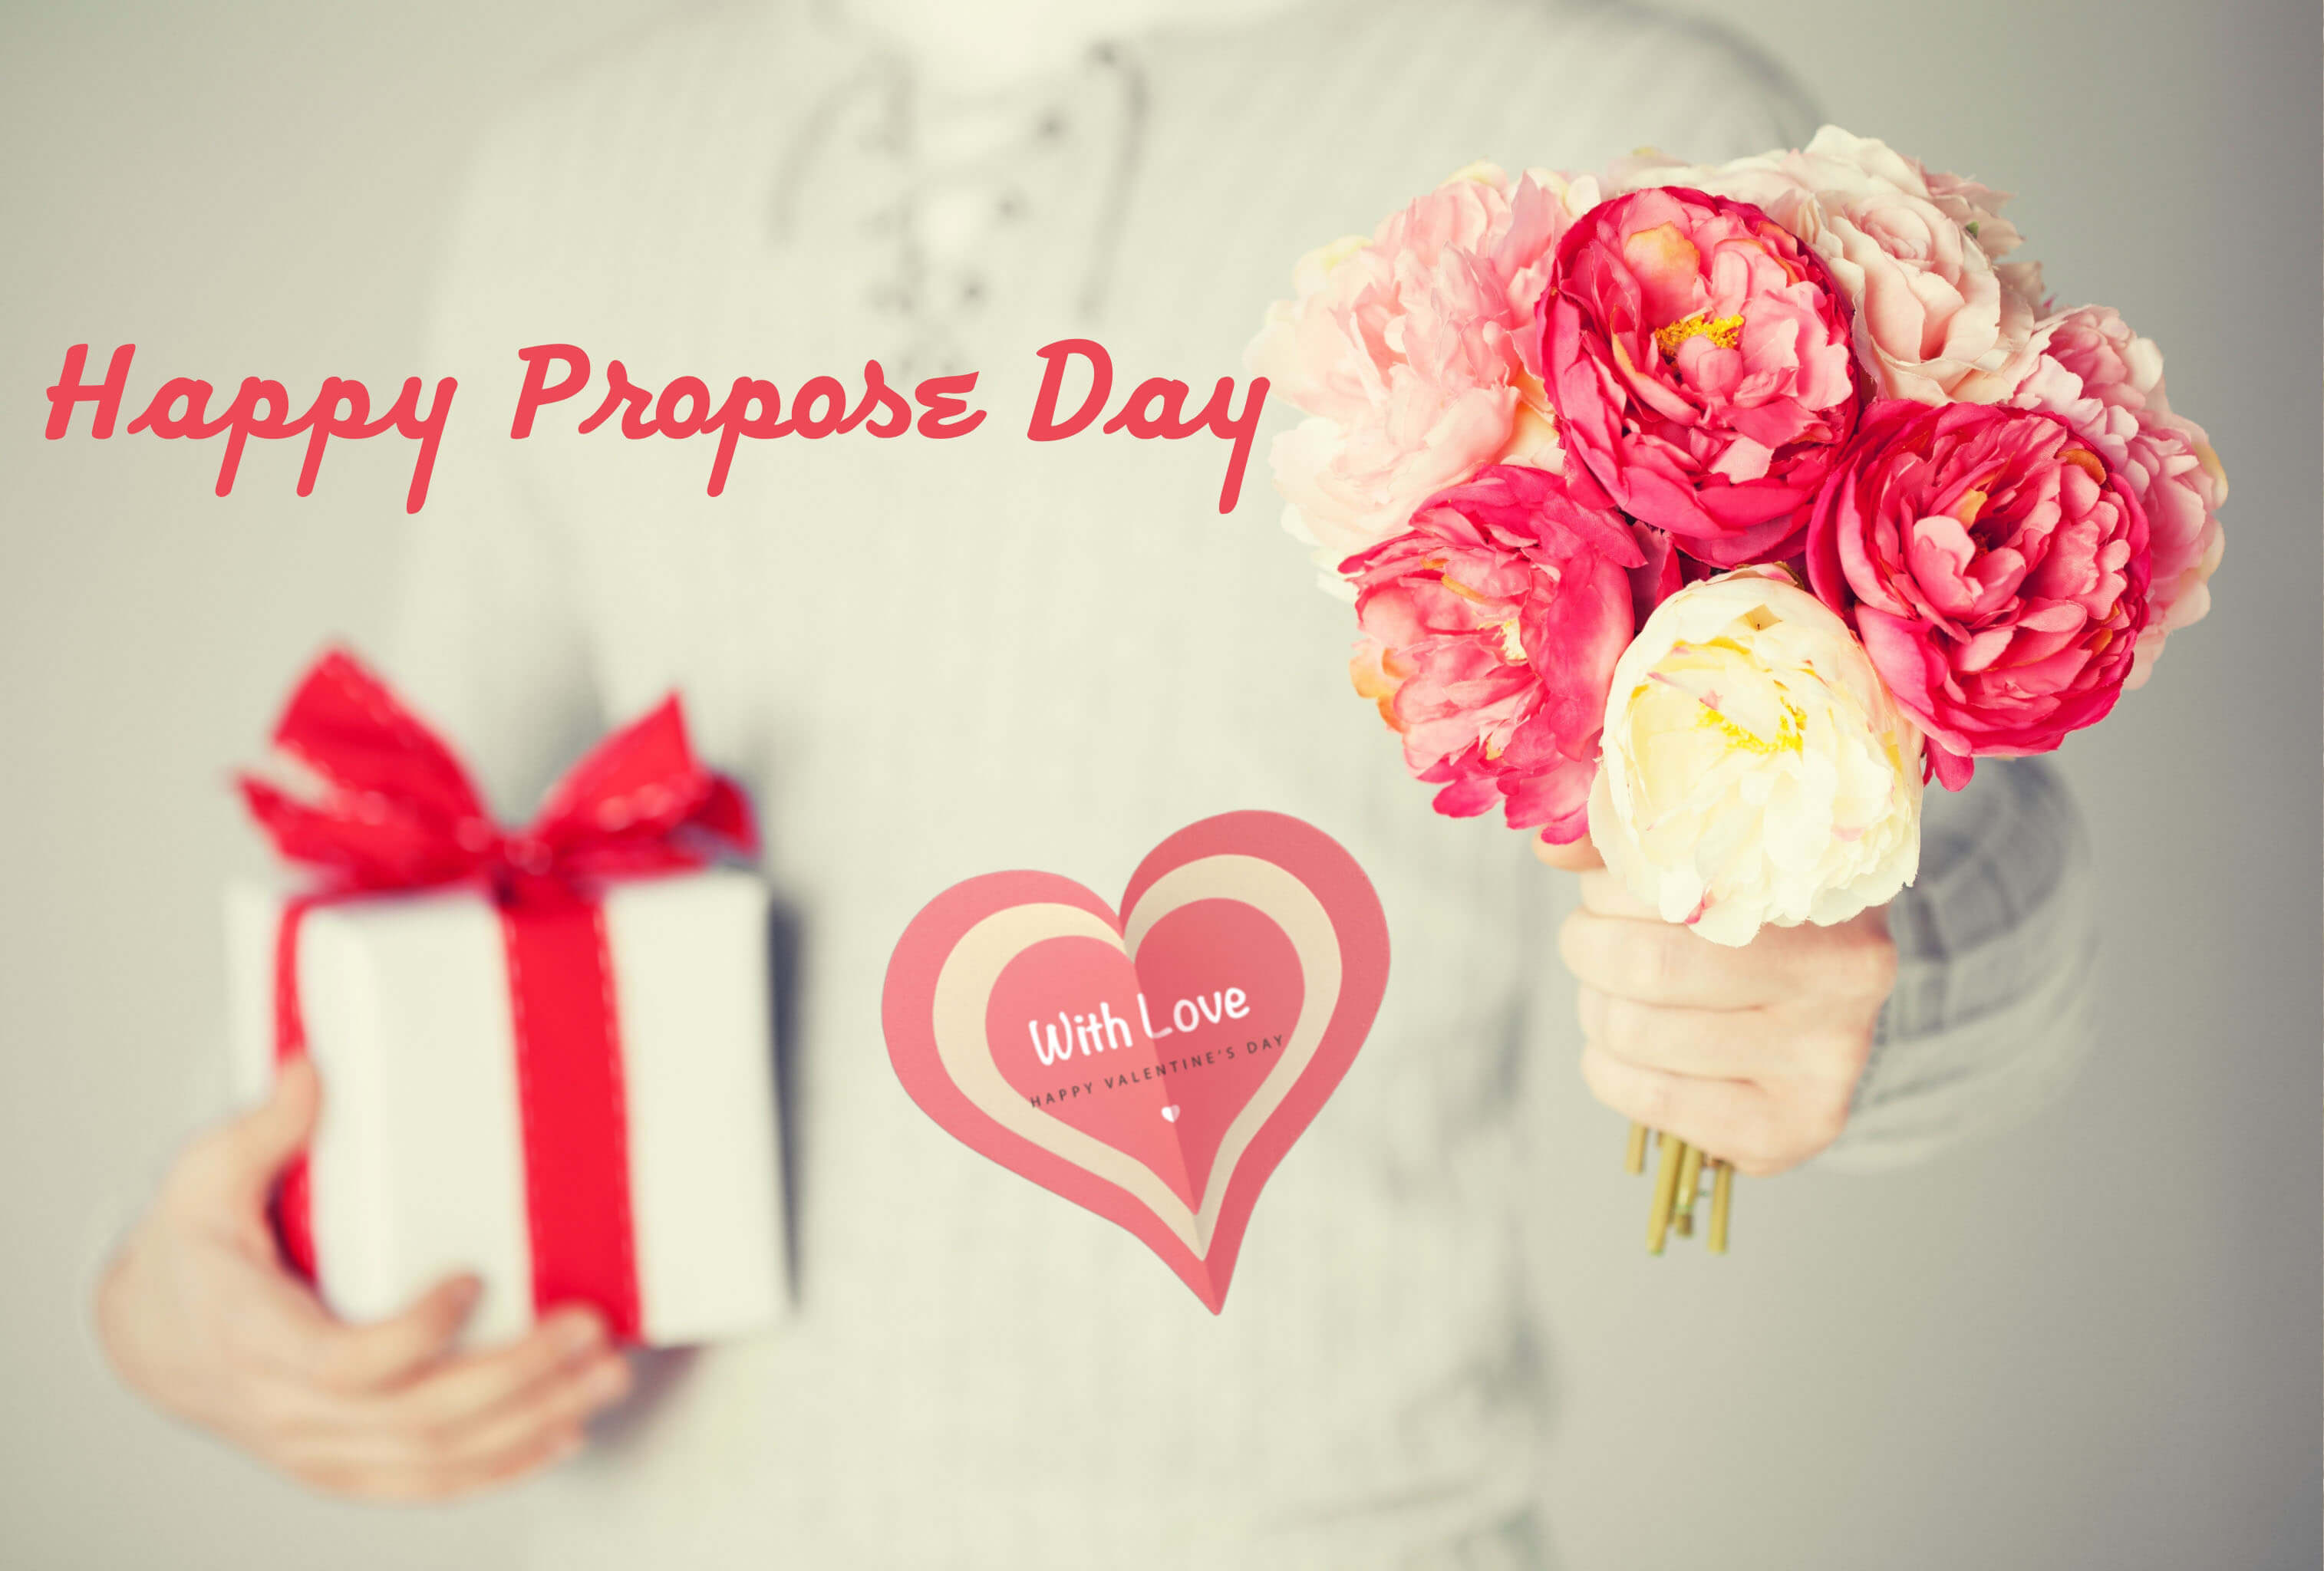 happy propose day gift roses 4k desktop background hd wallpaper